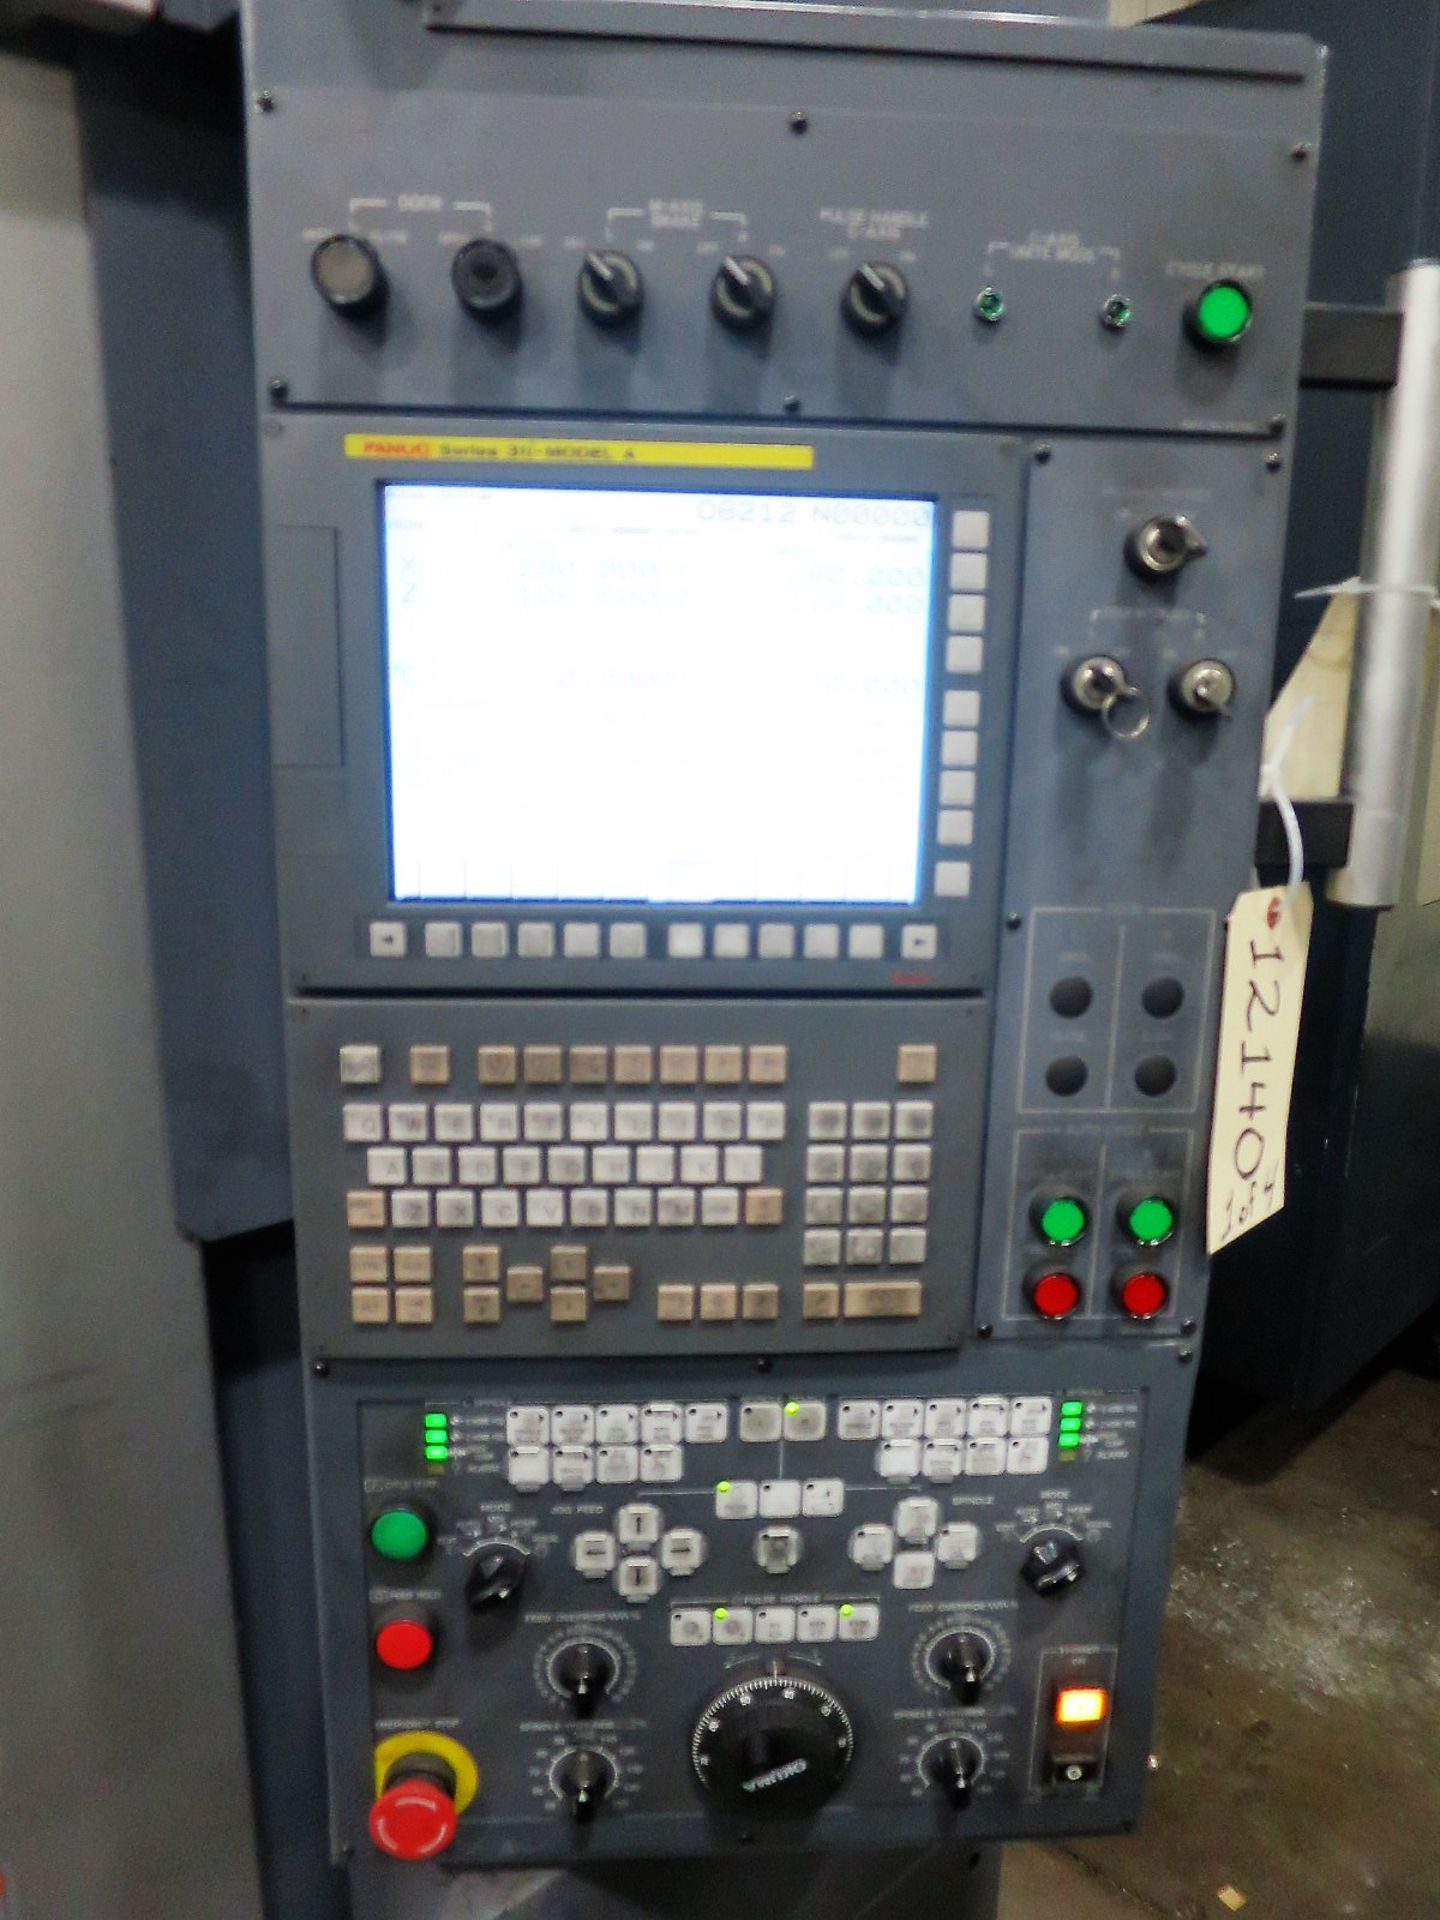 Lot 27 - Okuma 2SP-150HM Twin Spindle 3-Axis Turning Center w/Live Milling, S/N 156690, New 2011